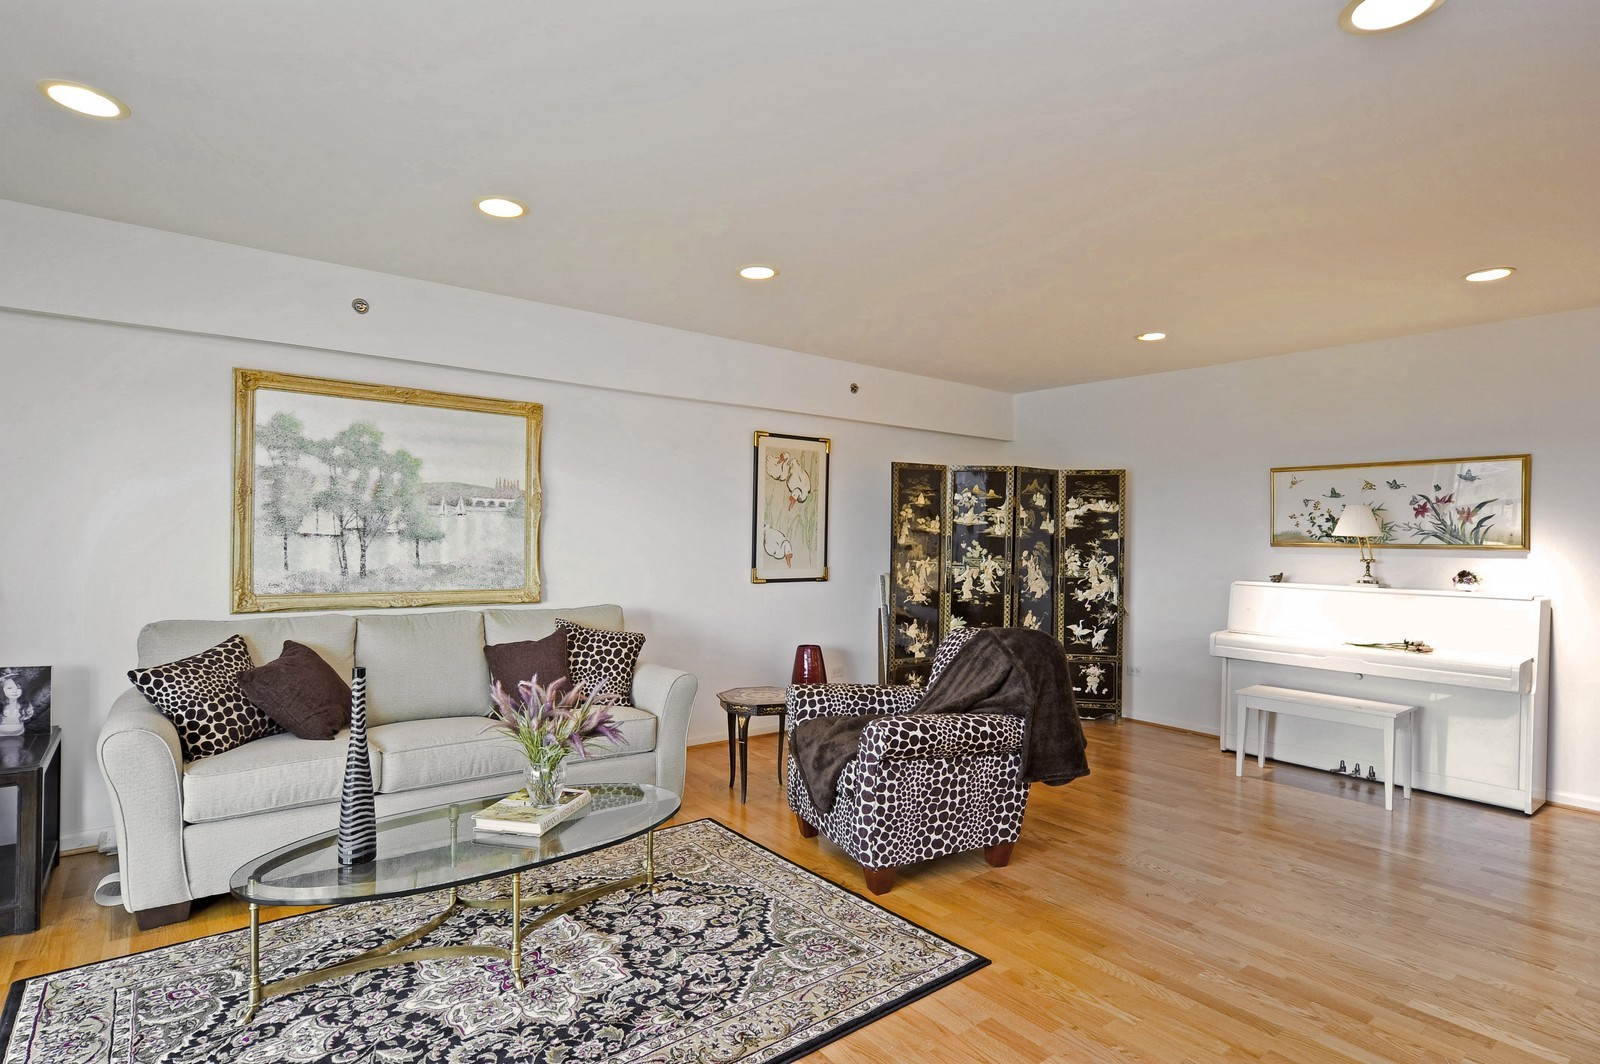 Real Estate Photography - 1700 2nd St, Highland Park, IL, 60035 - Location 1